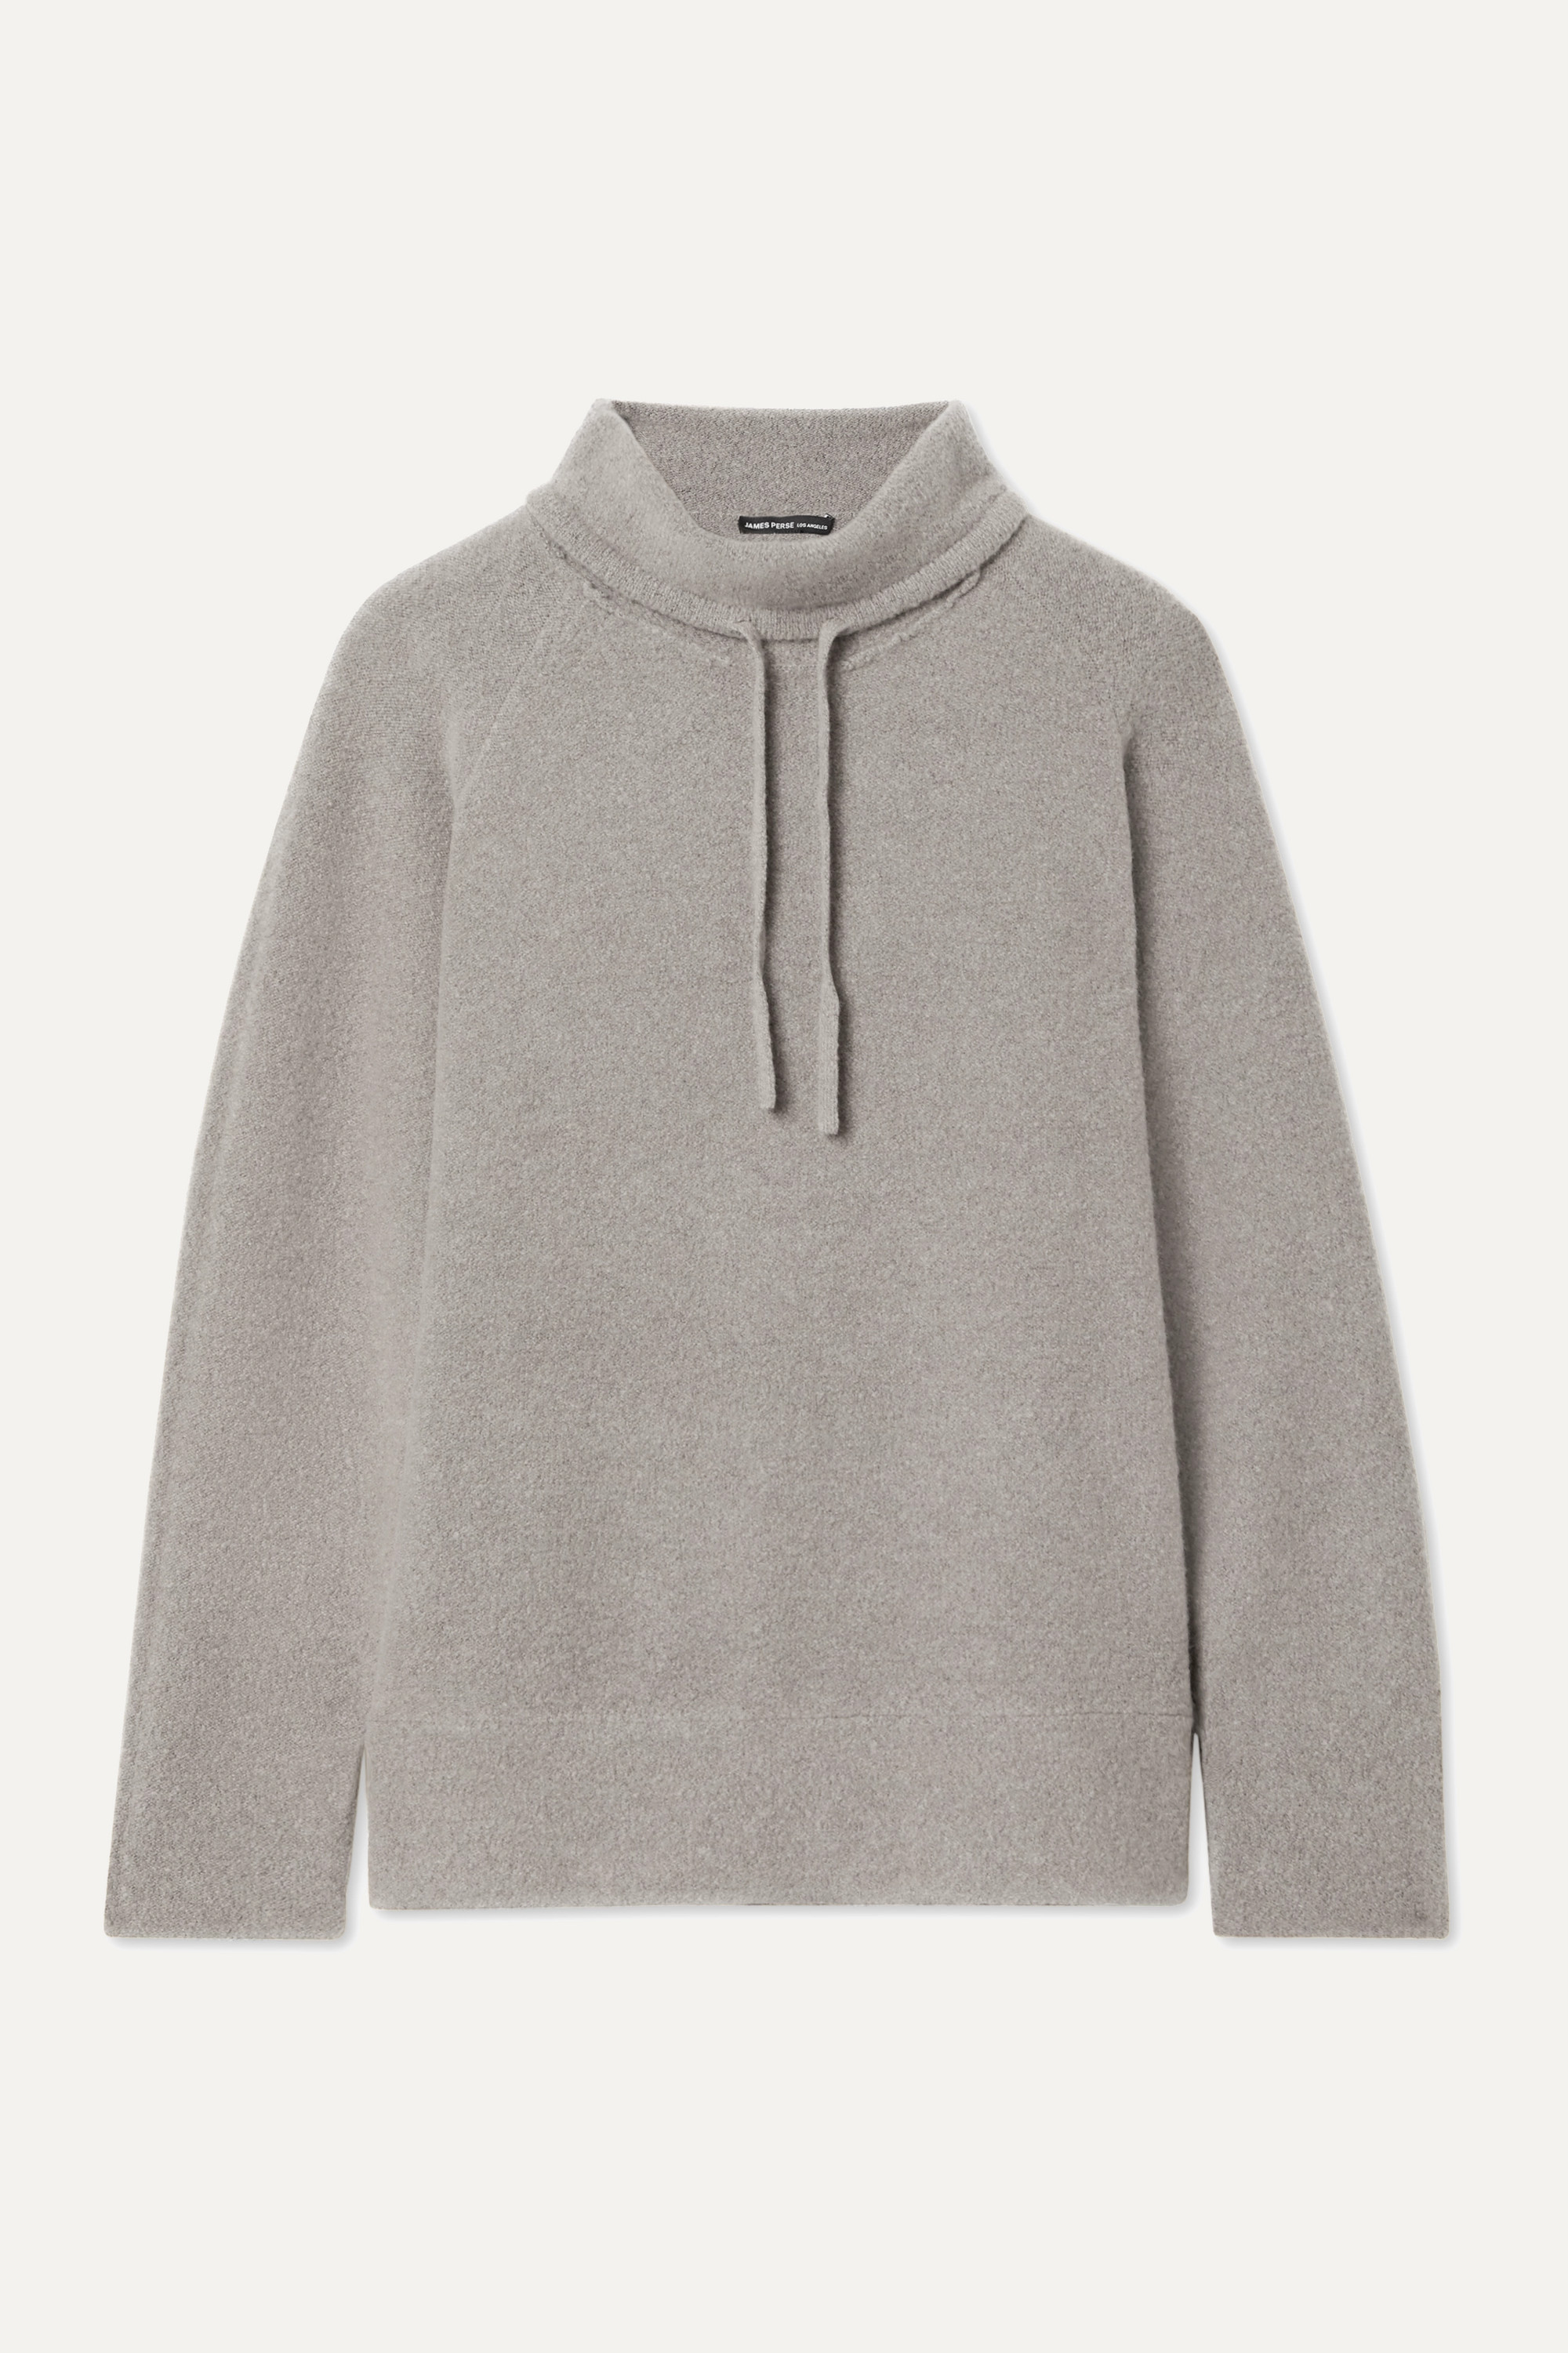 James Perse Cashmere-blend sweater